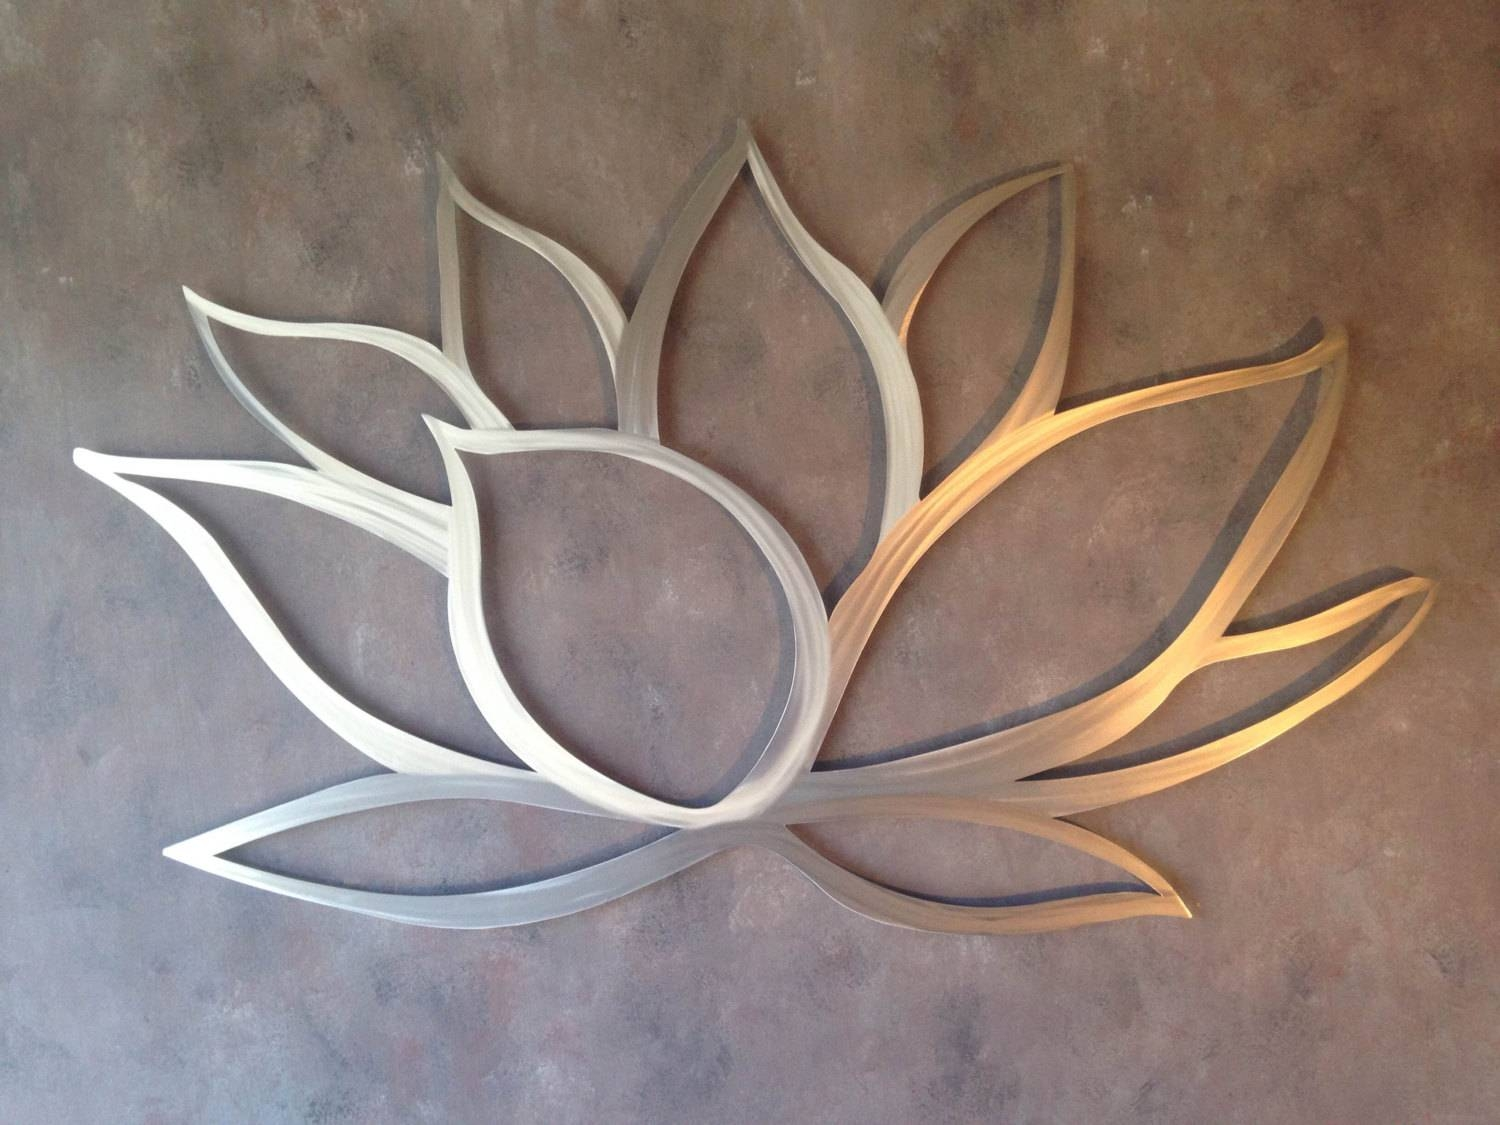 Appealing Metal Wall Artwork 126 Metal Wall Decor Canada Full In Most Current Buddha Metal Wall Art (View 3 of 20)